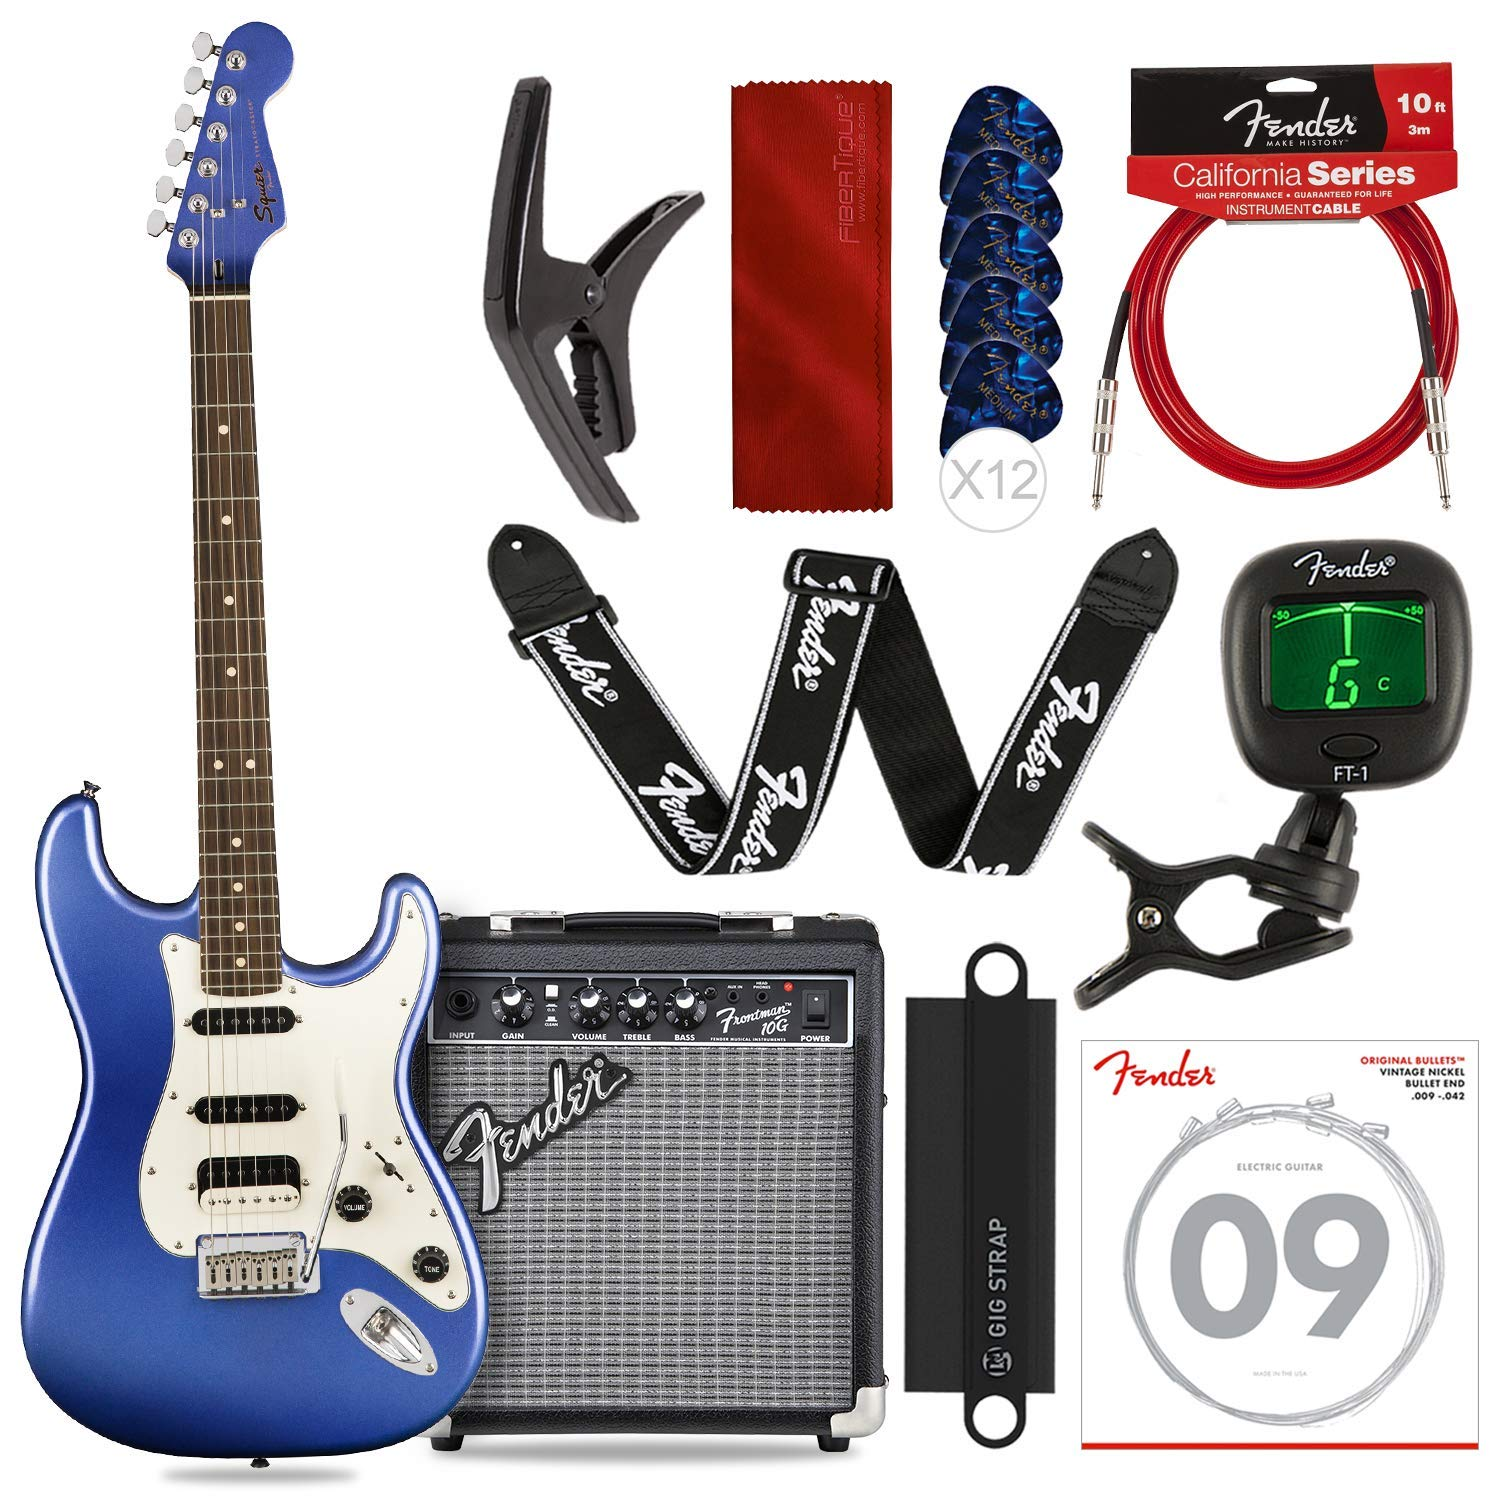 Cheap Squier by Fender Contemporary Stratocaster Electric Guitar HSS Ocean Blue Metallic with FRONTMAN 10G Amp Strap Picks Strings & Platinum Bundle Black Friday & Cyber Monday 2019